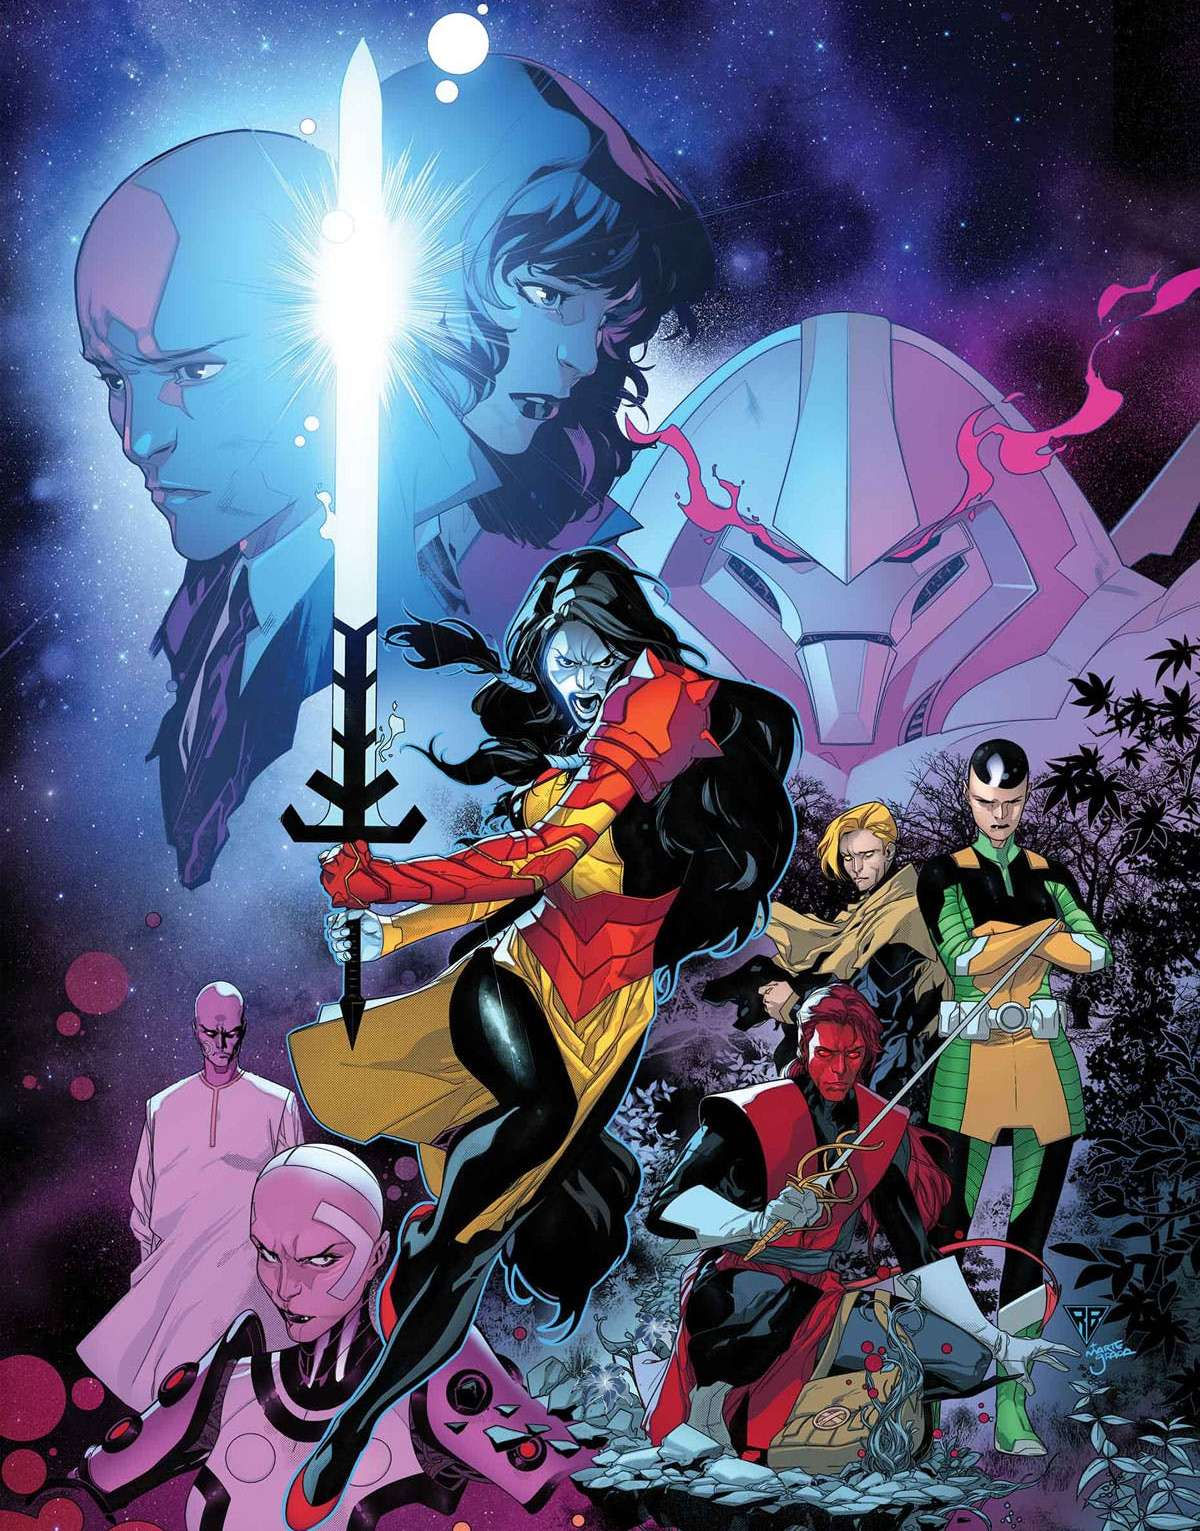 Powers of X #1: Millennium